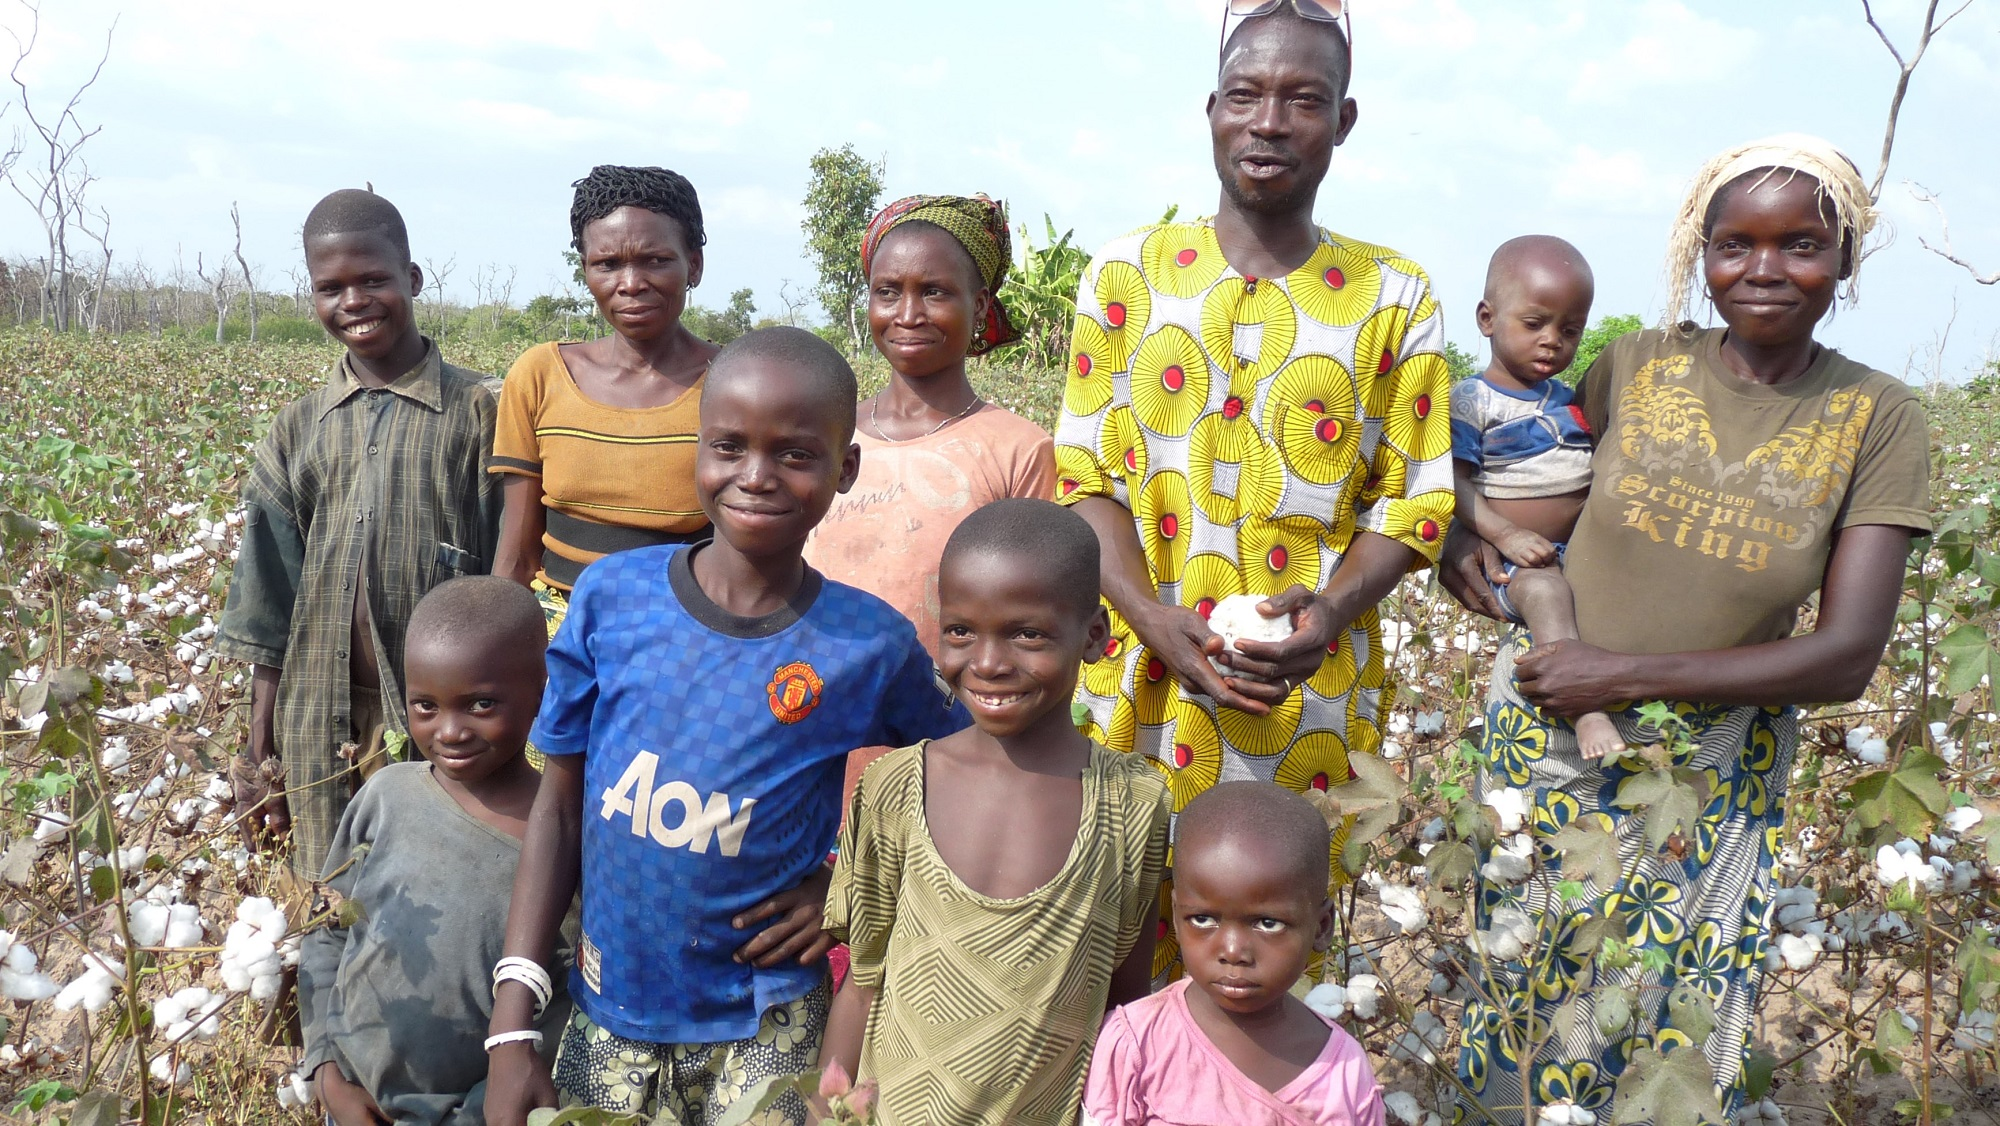 Working to better the livelihoods of cotton farmer families in Benin